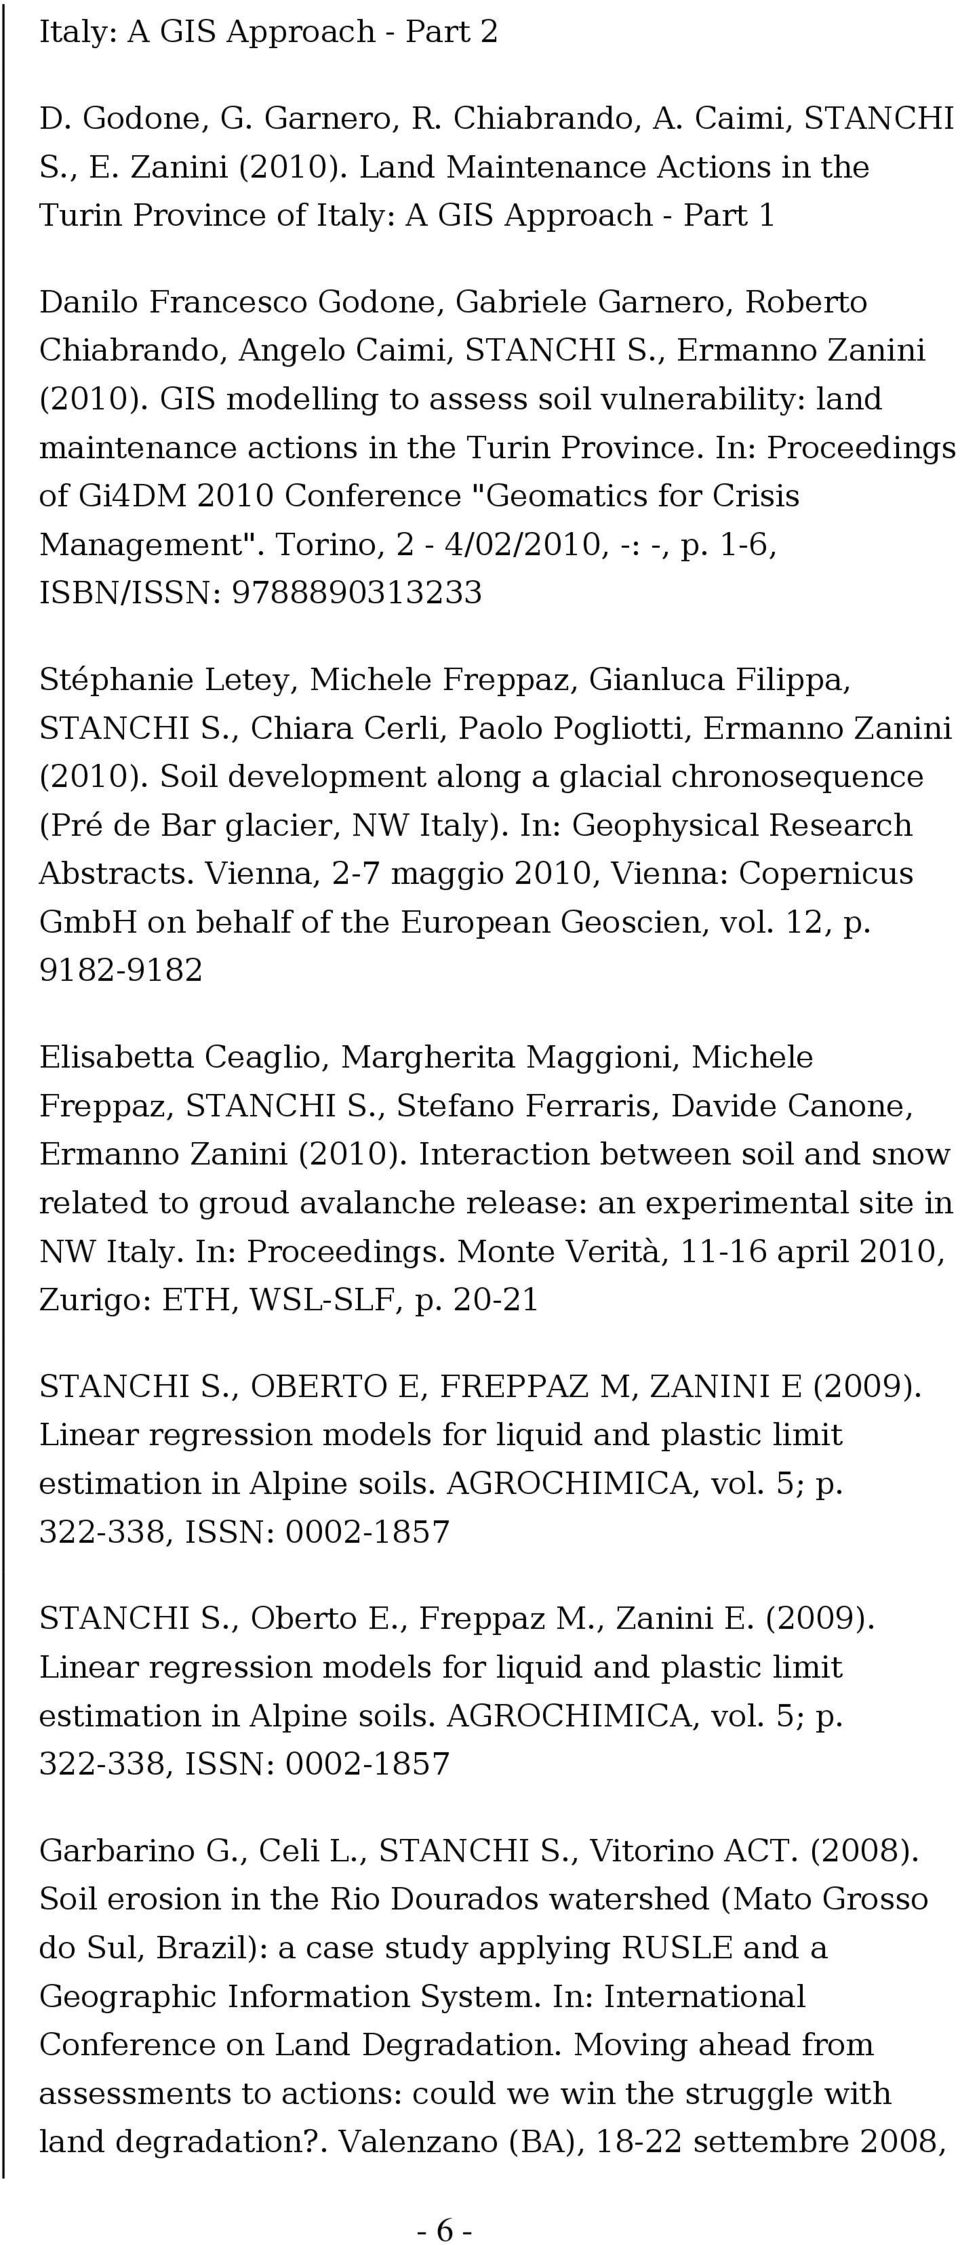 "GIS modelling to assess soil vulnerability: land maintenance actions in the Turin Province. In: Proceedings of Gi4DM 2010 Conference ""Geomatics for Crisis Management"". Torino, 2-4/02/2010, -: -, p."